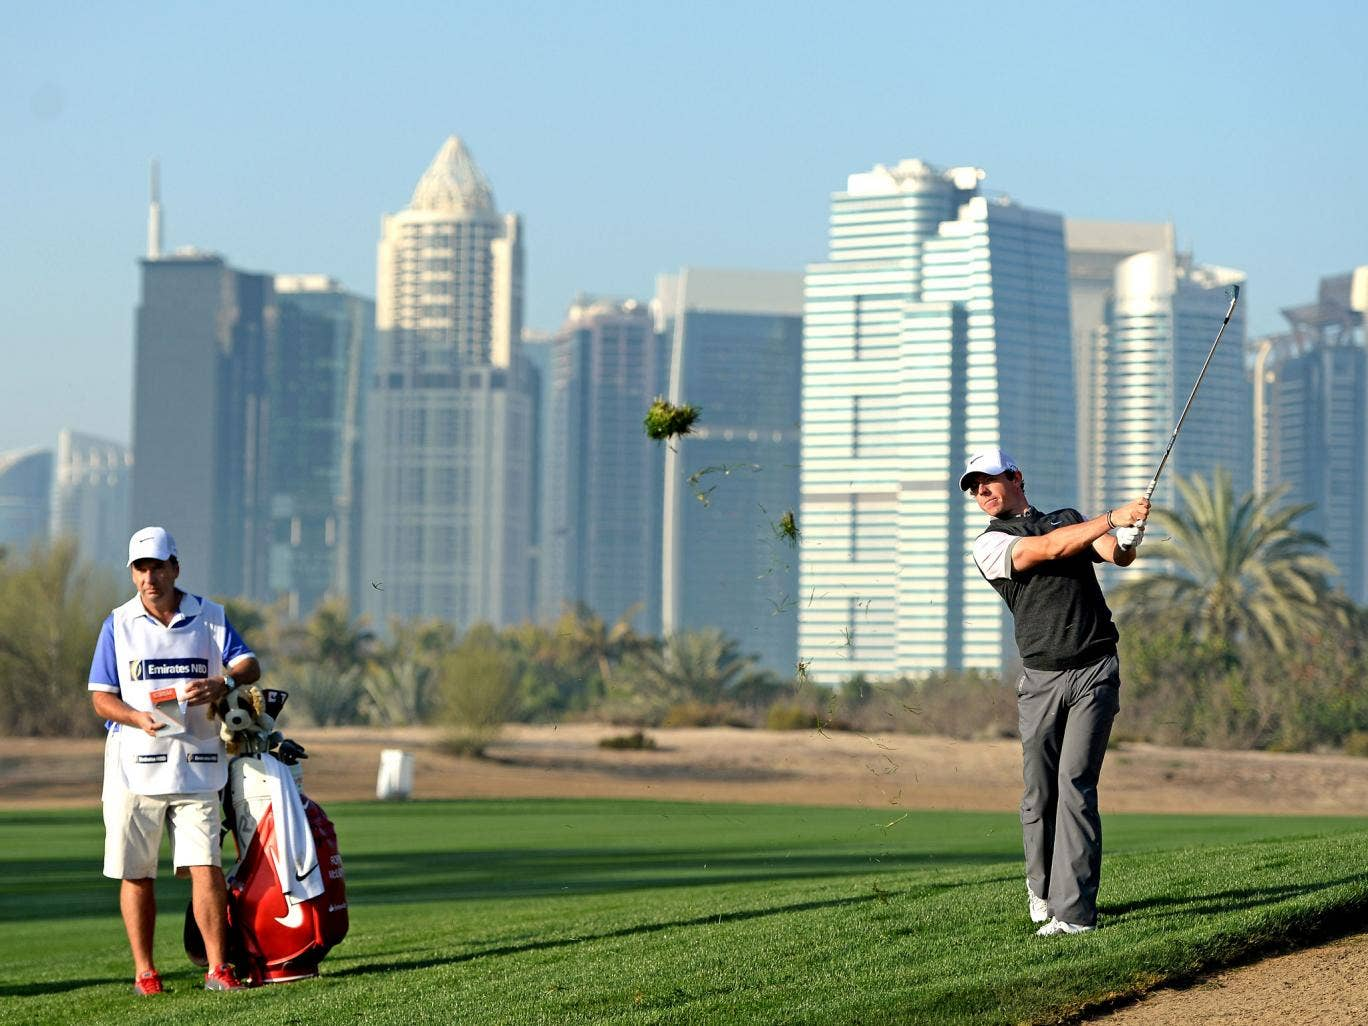 Rory McIlroy plays a shot on the 13th during the pro-am event ahead of the Dubai Desert Classic